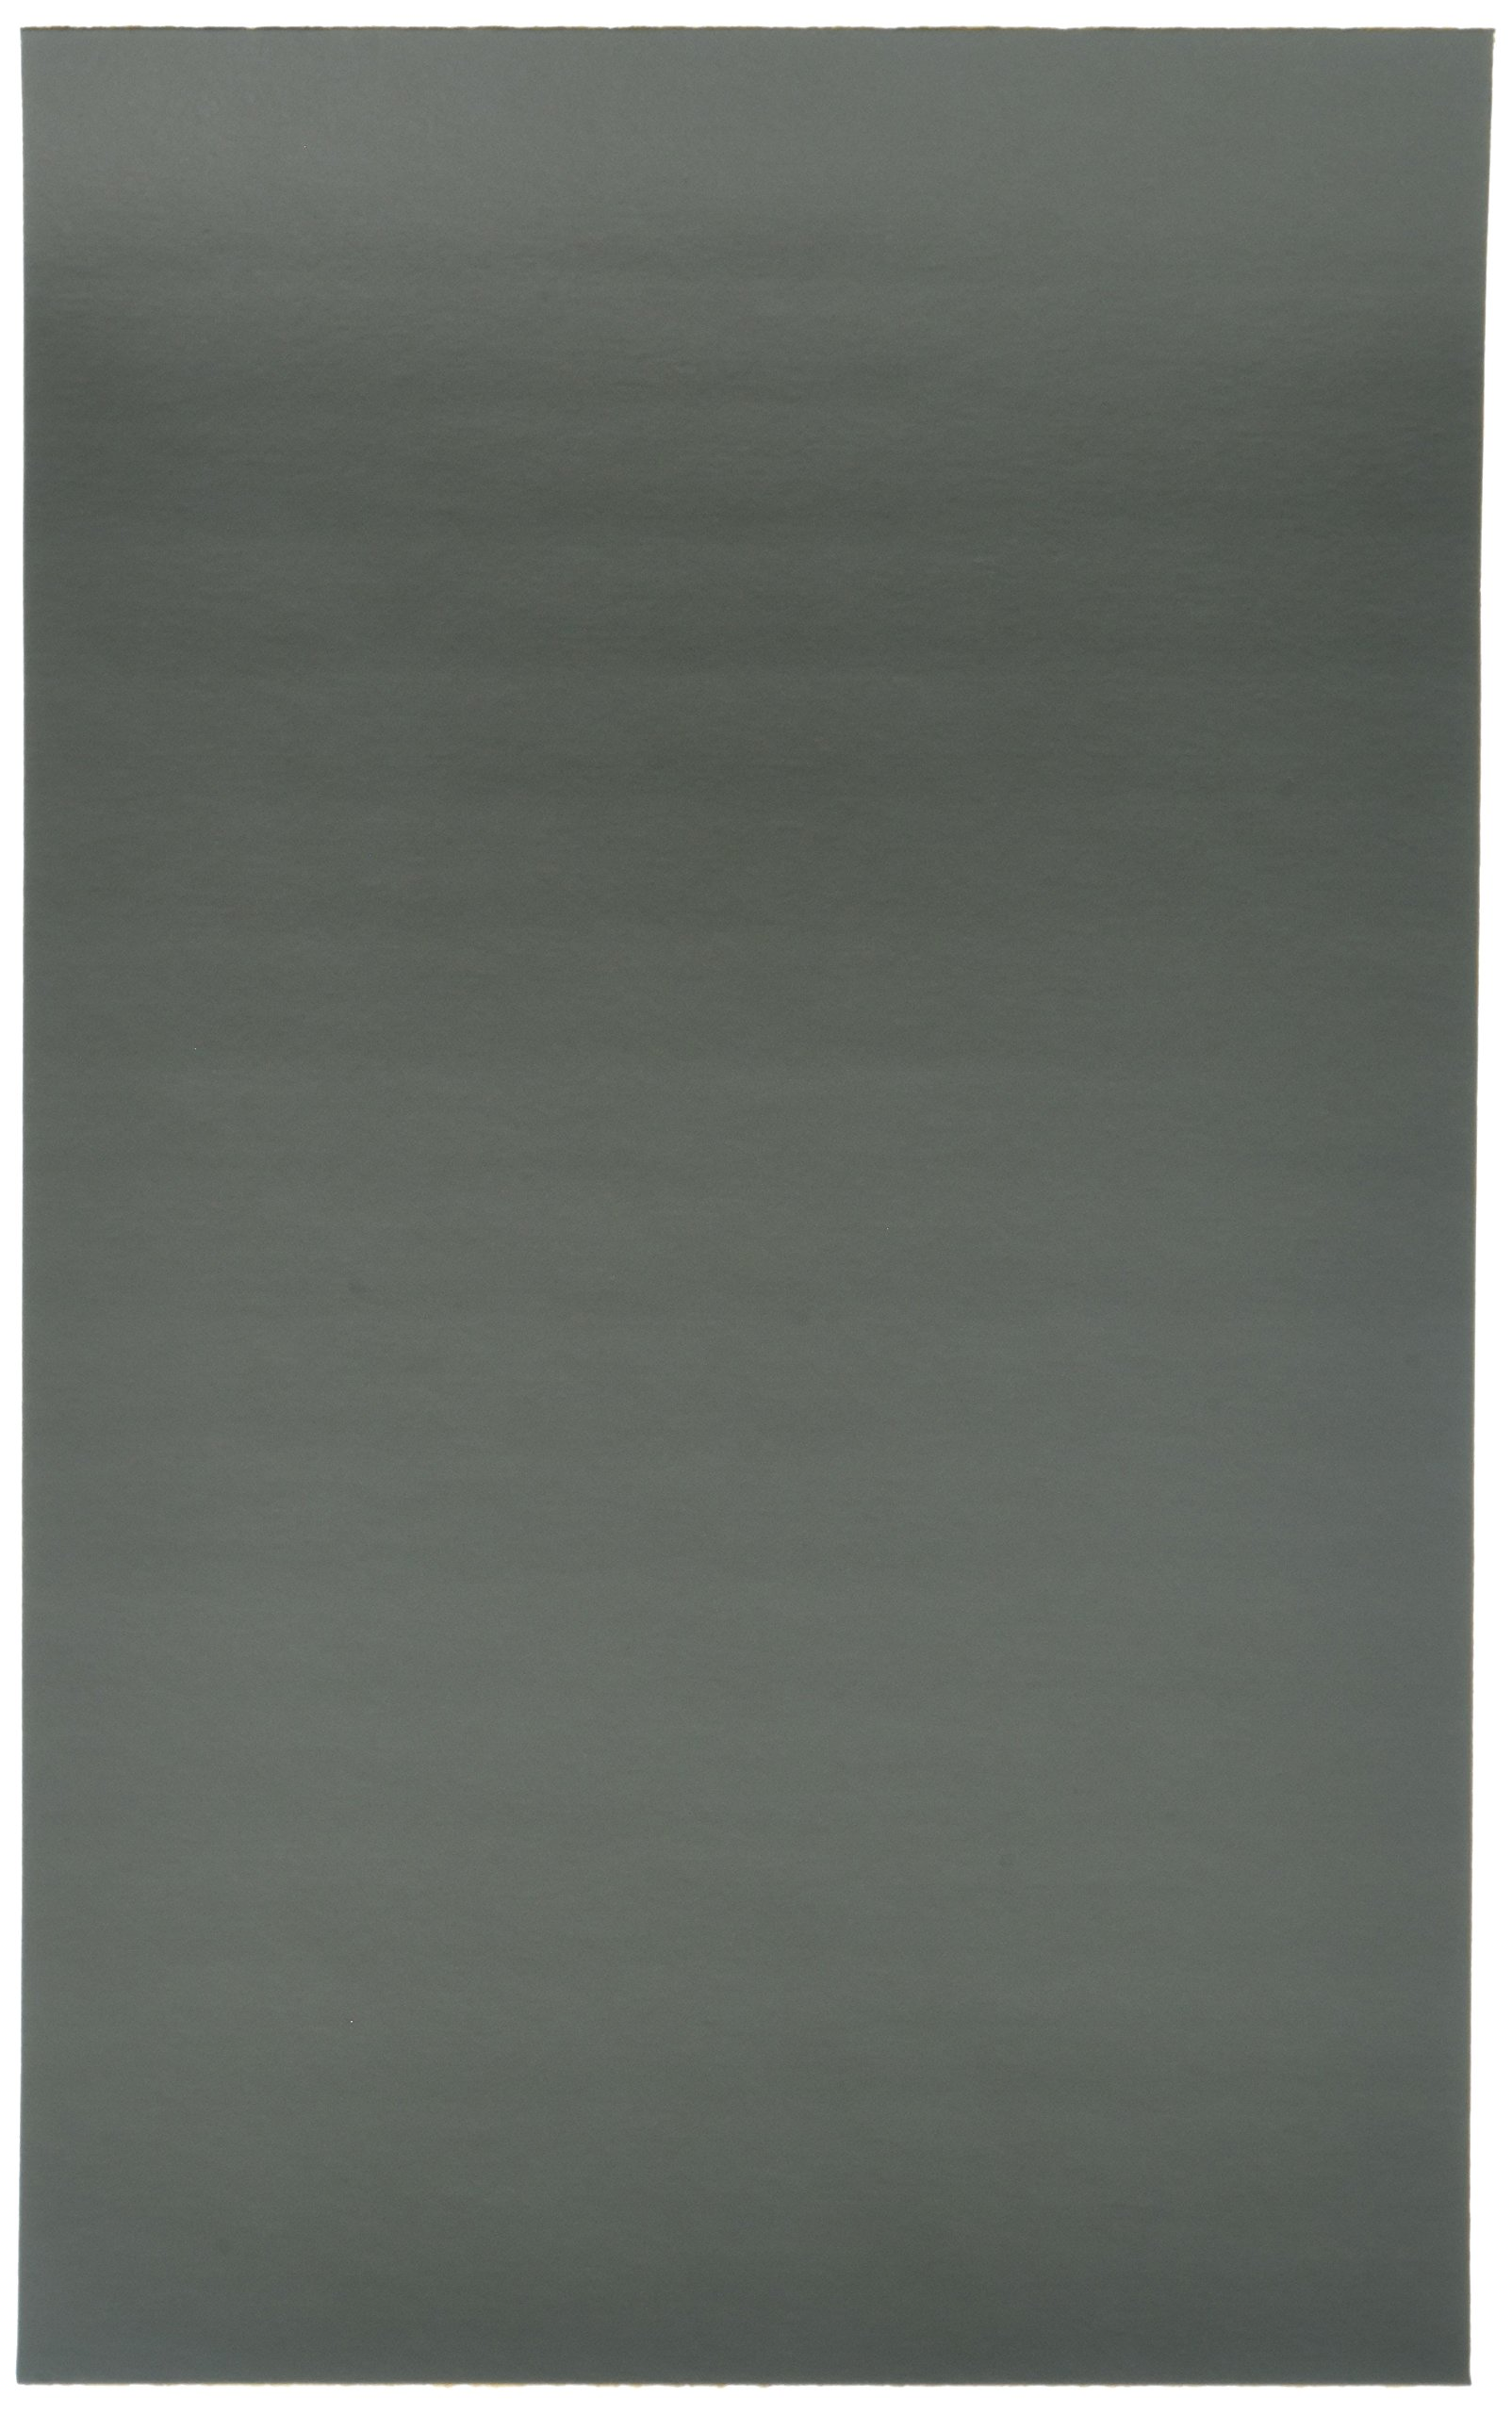 3M 02623 Imperial Wetordry 5-1/2'' x 9'' 1500C Grit Sheet by 3M (Image #1)